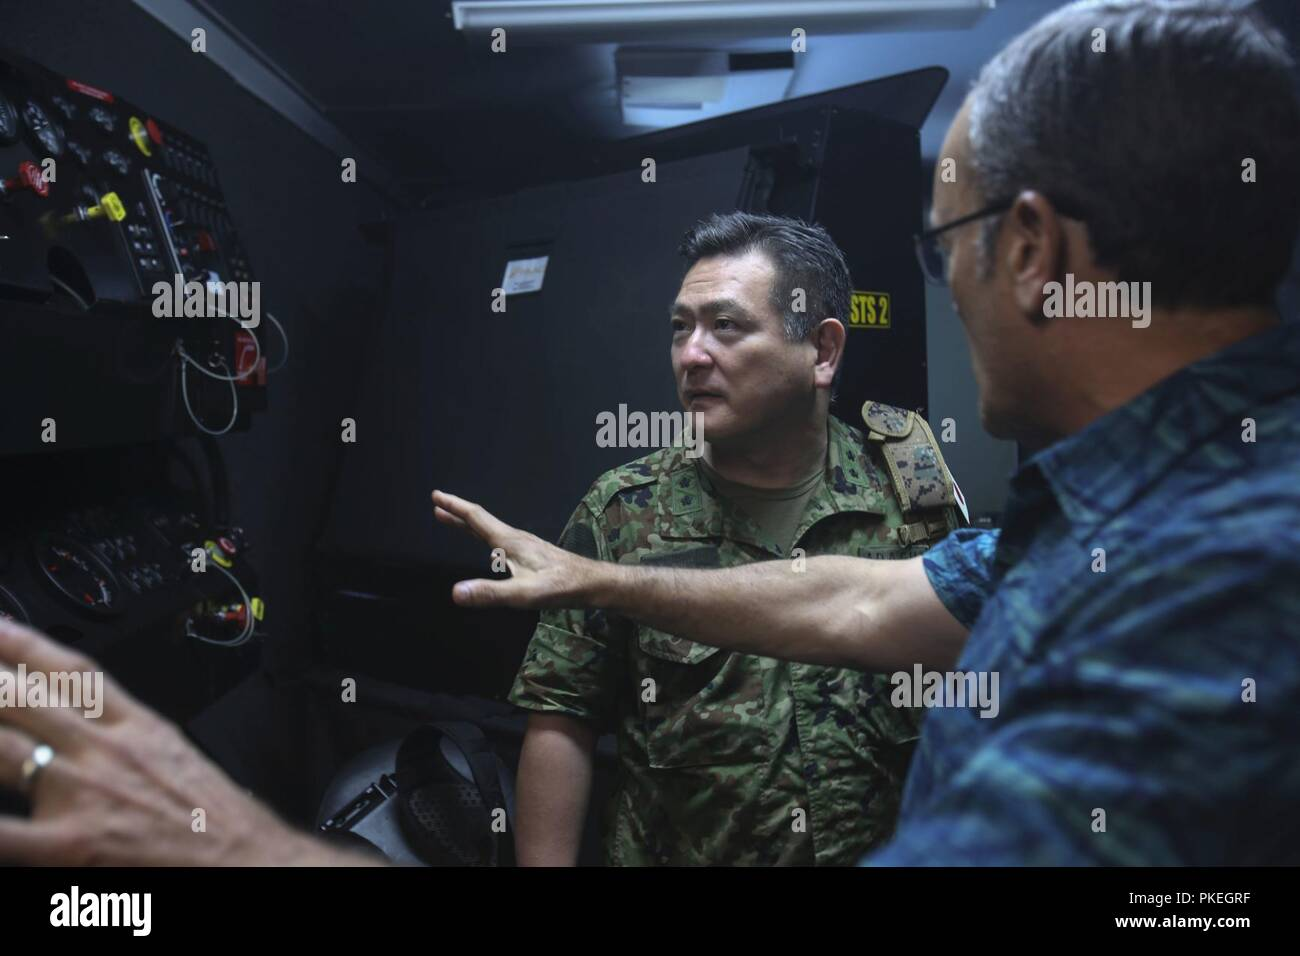 Major Gen. Yoshiki Adachi, defense and military attaché, Embassy of Japan, is briefed on the schematics of a controlled driving simulator on Camp Lejeune, N.C., Aug. 3, 2018. Adachi is visiting the Marines and Sailors of II Marine Expeditionary Force to continue to build relationships and understand II MEF's mission and activities in the western hemisphere in regards to its amphibious capabilities and operations. - Stock Image